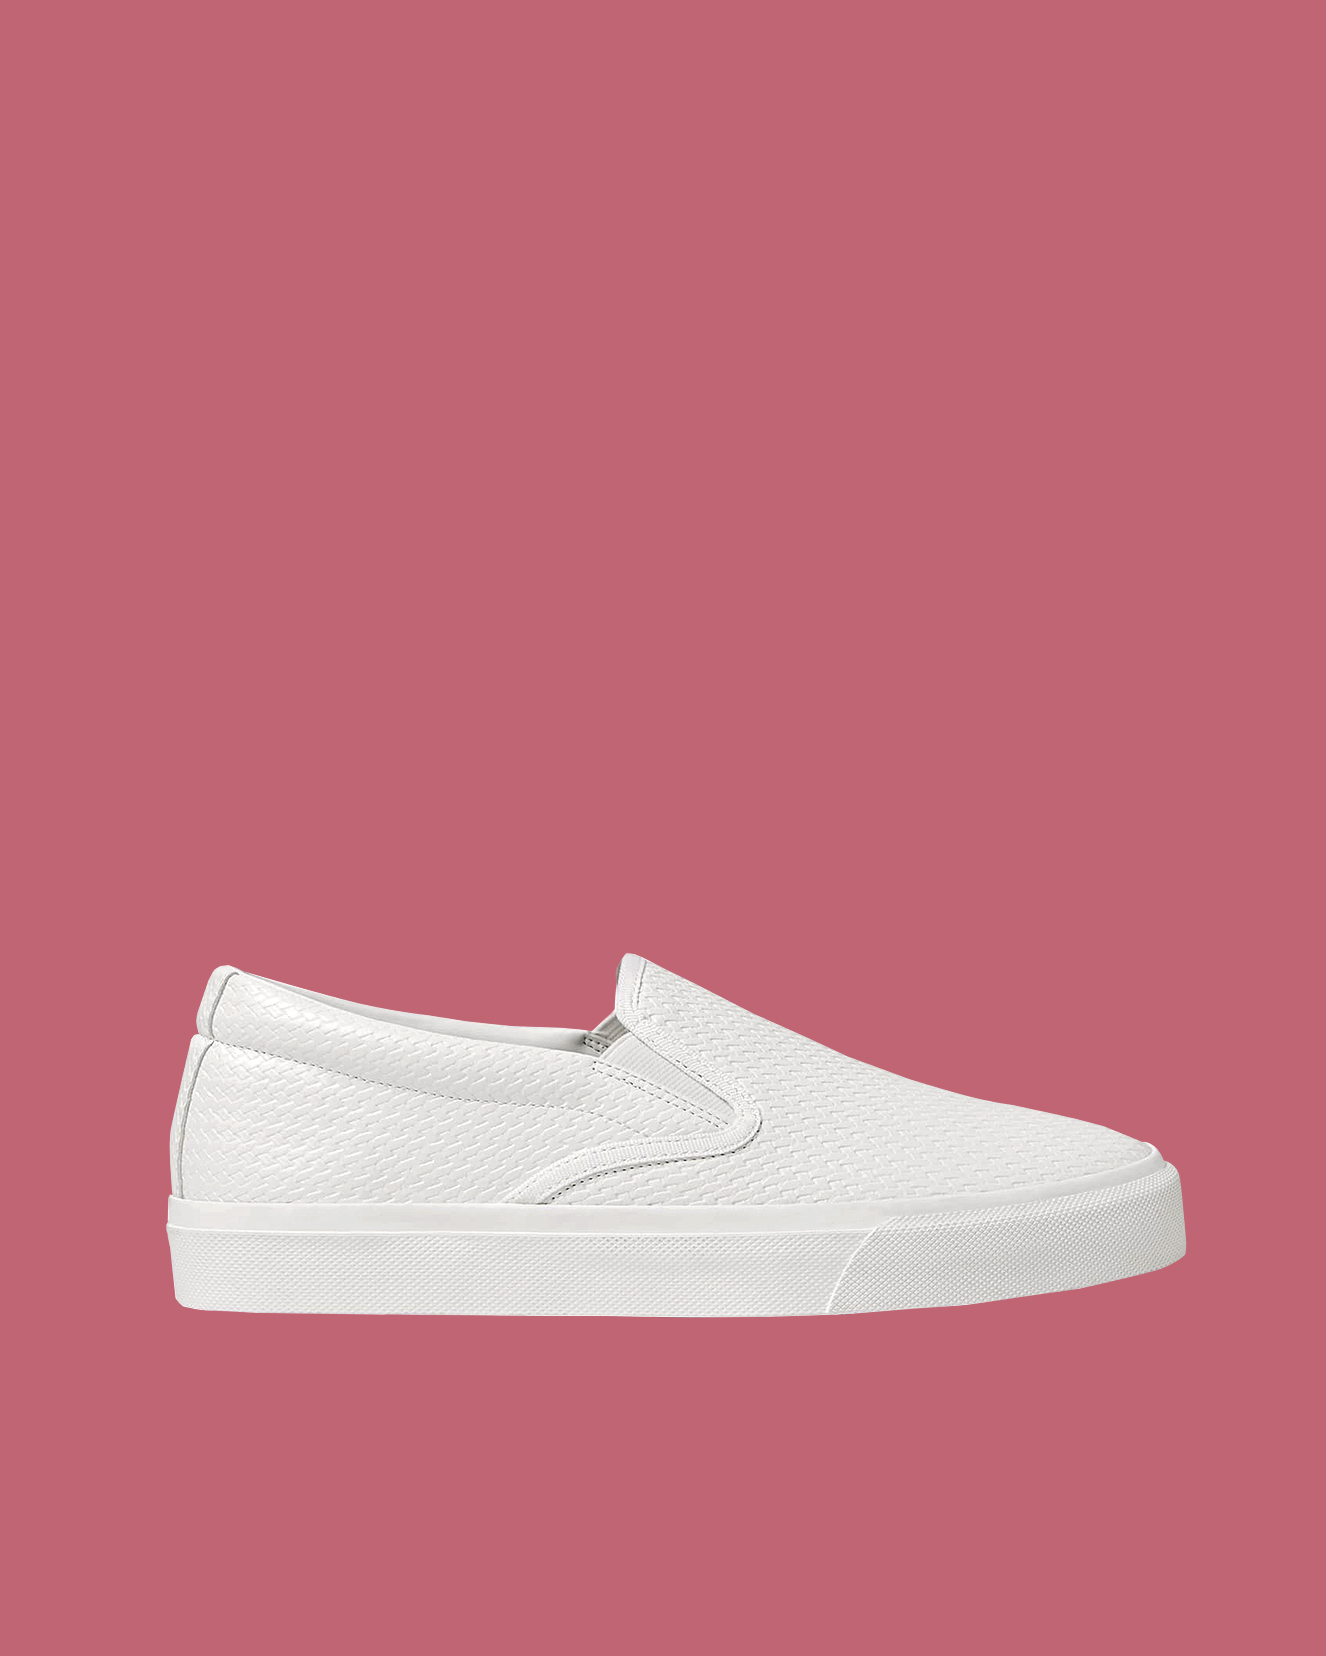 Zara Embossed Sneakers